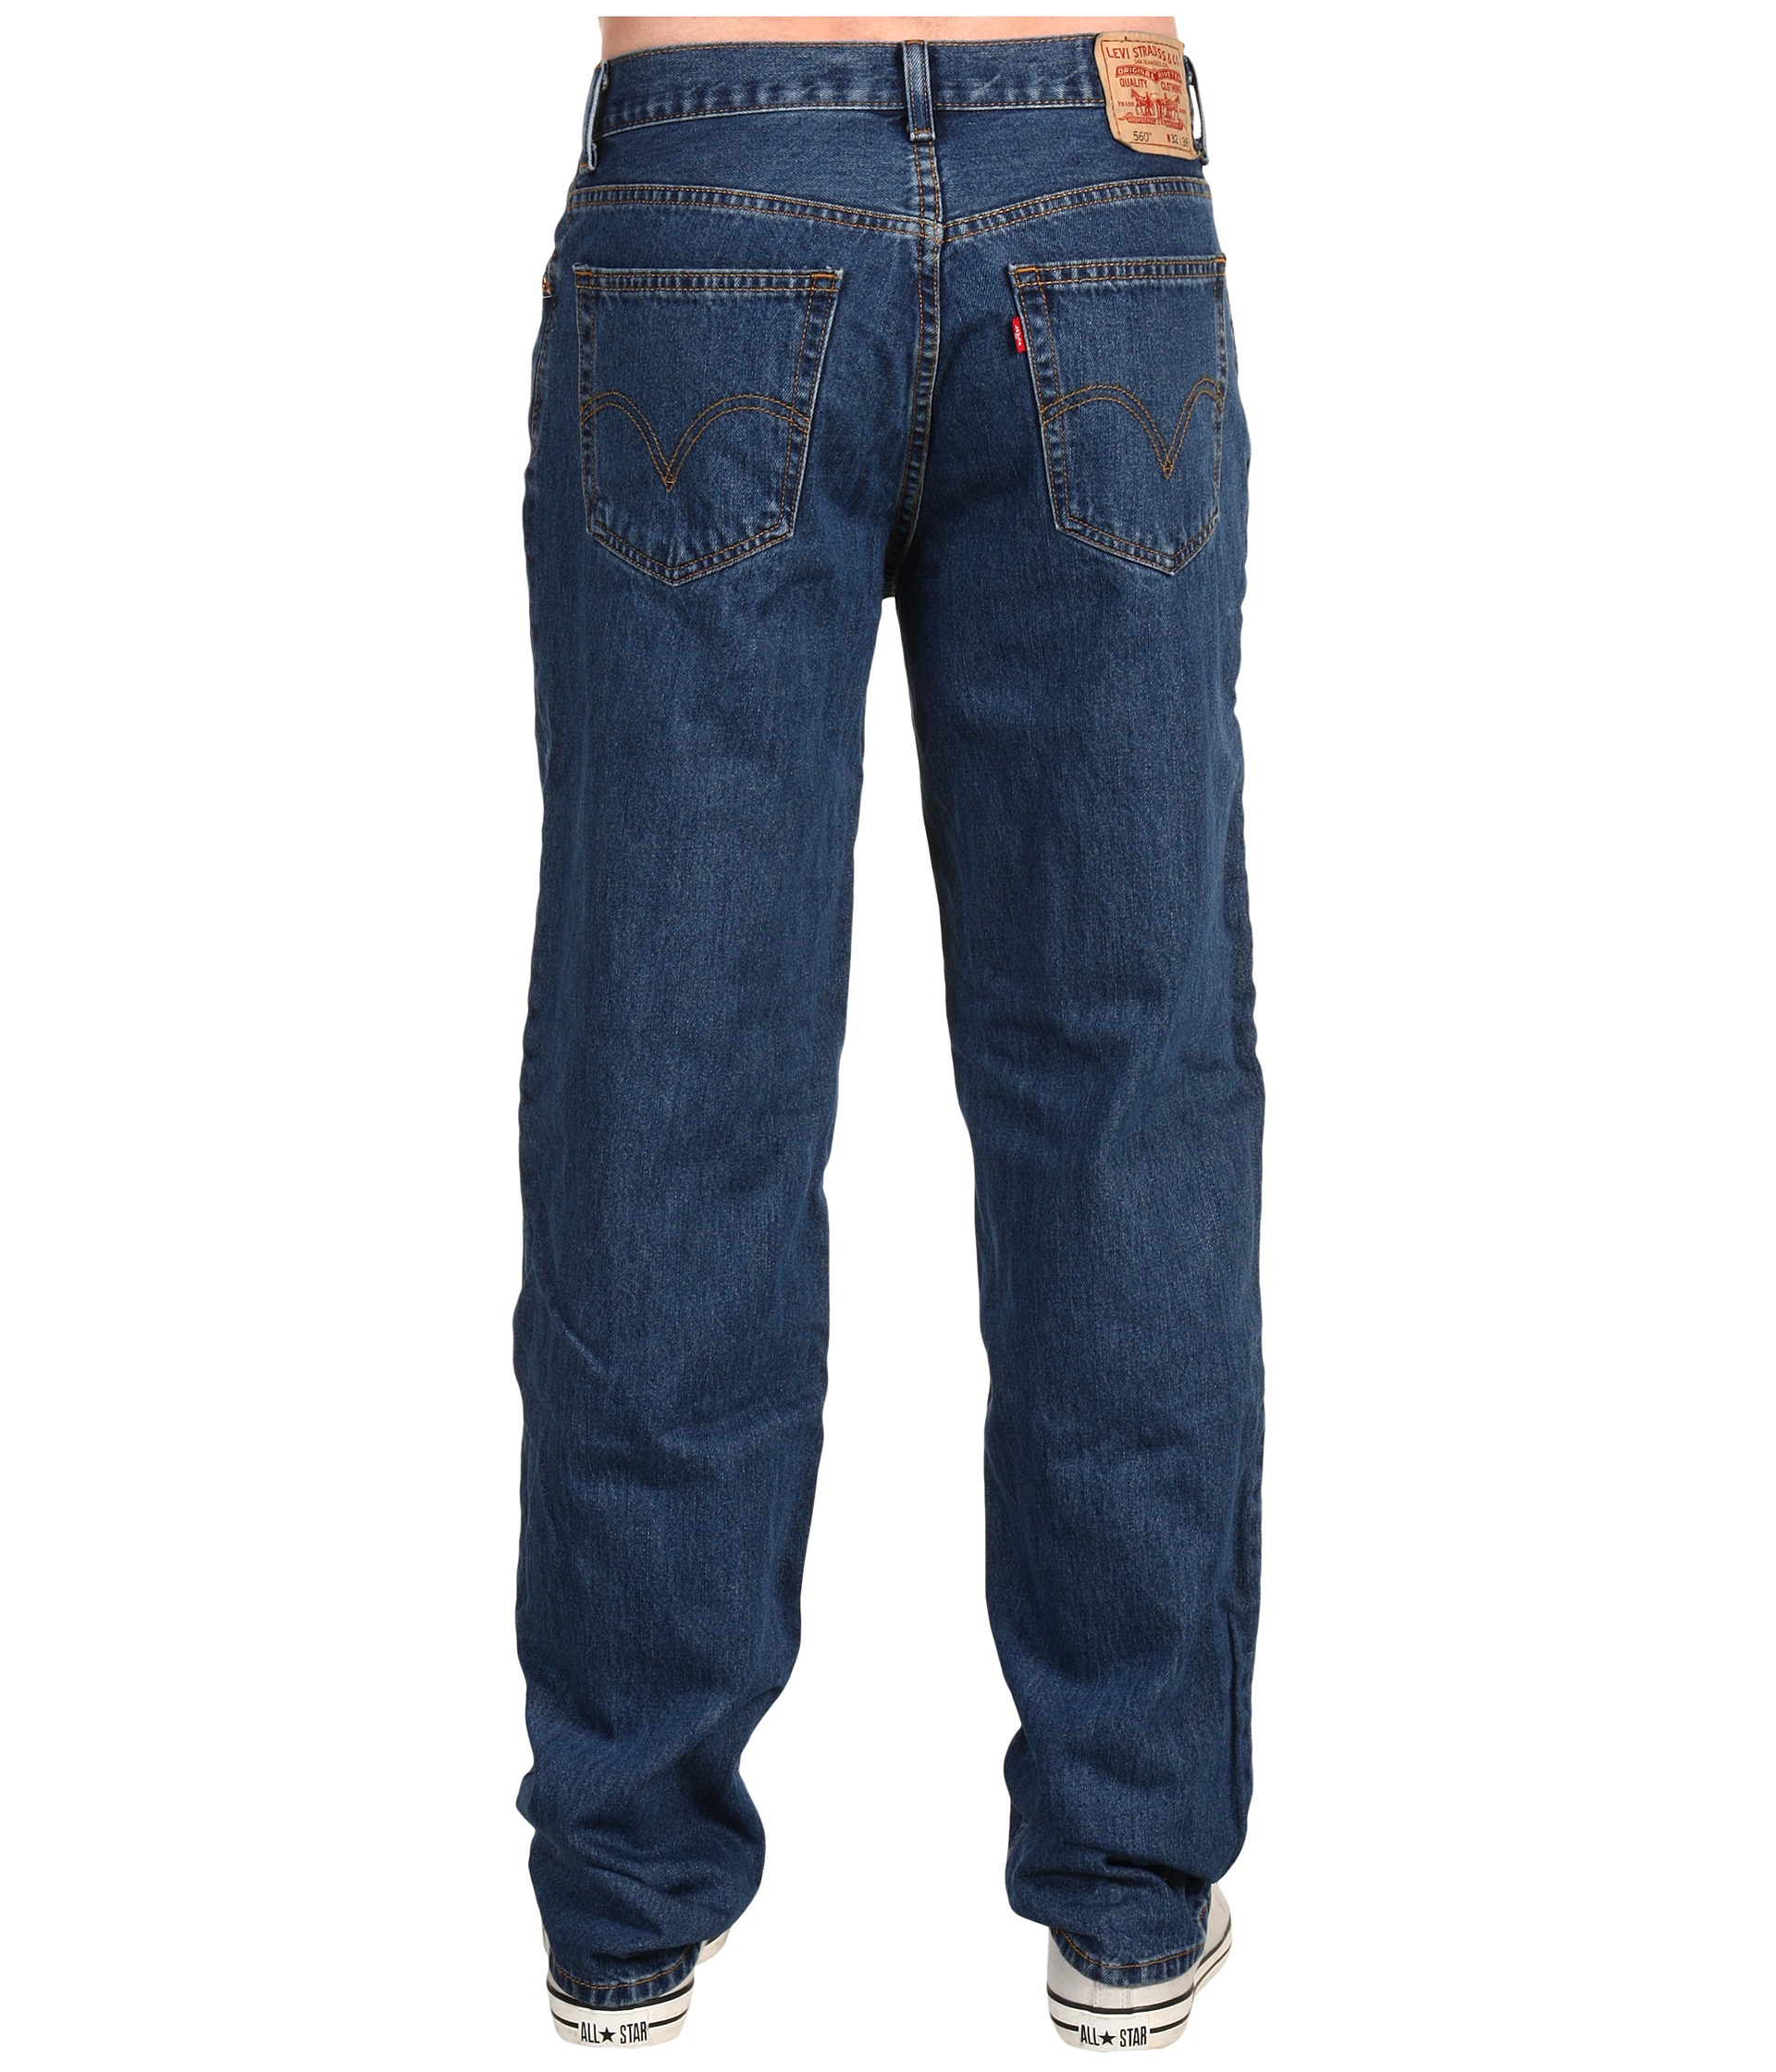 Jeans, Men, Relaxed Fit | Shipped Free at Zappos